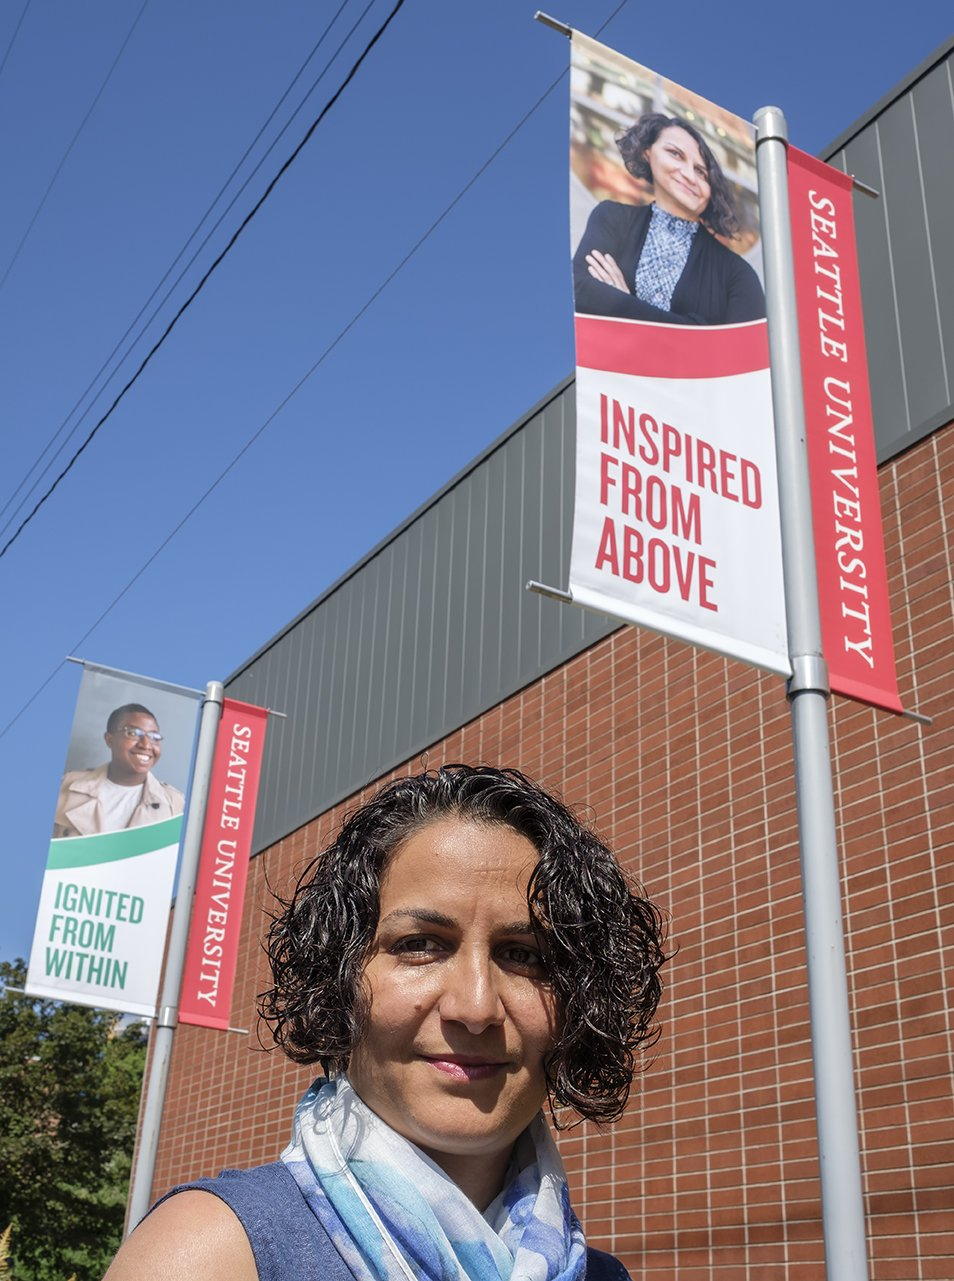 Seattle University On Twitter She Looks Familiar Su Computer Science Software Engr Prof Roshanak Roshandel Is Featured On A New Su Banner Installed Today Seattleu Https T Co Fq9vtdt167